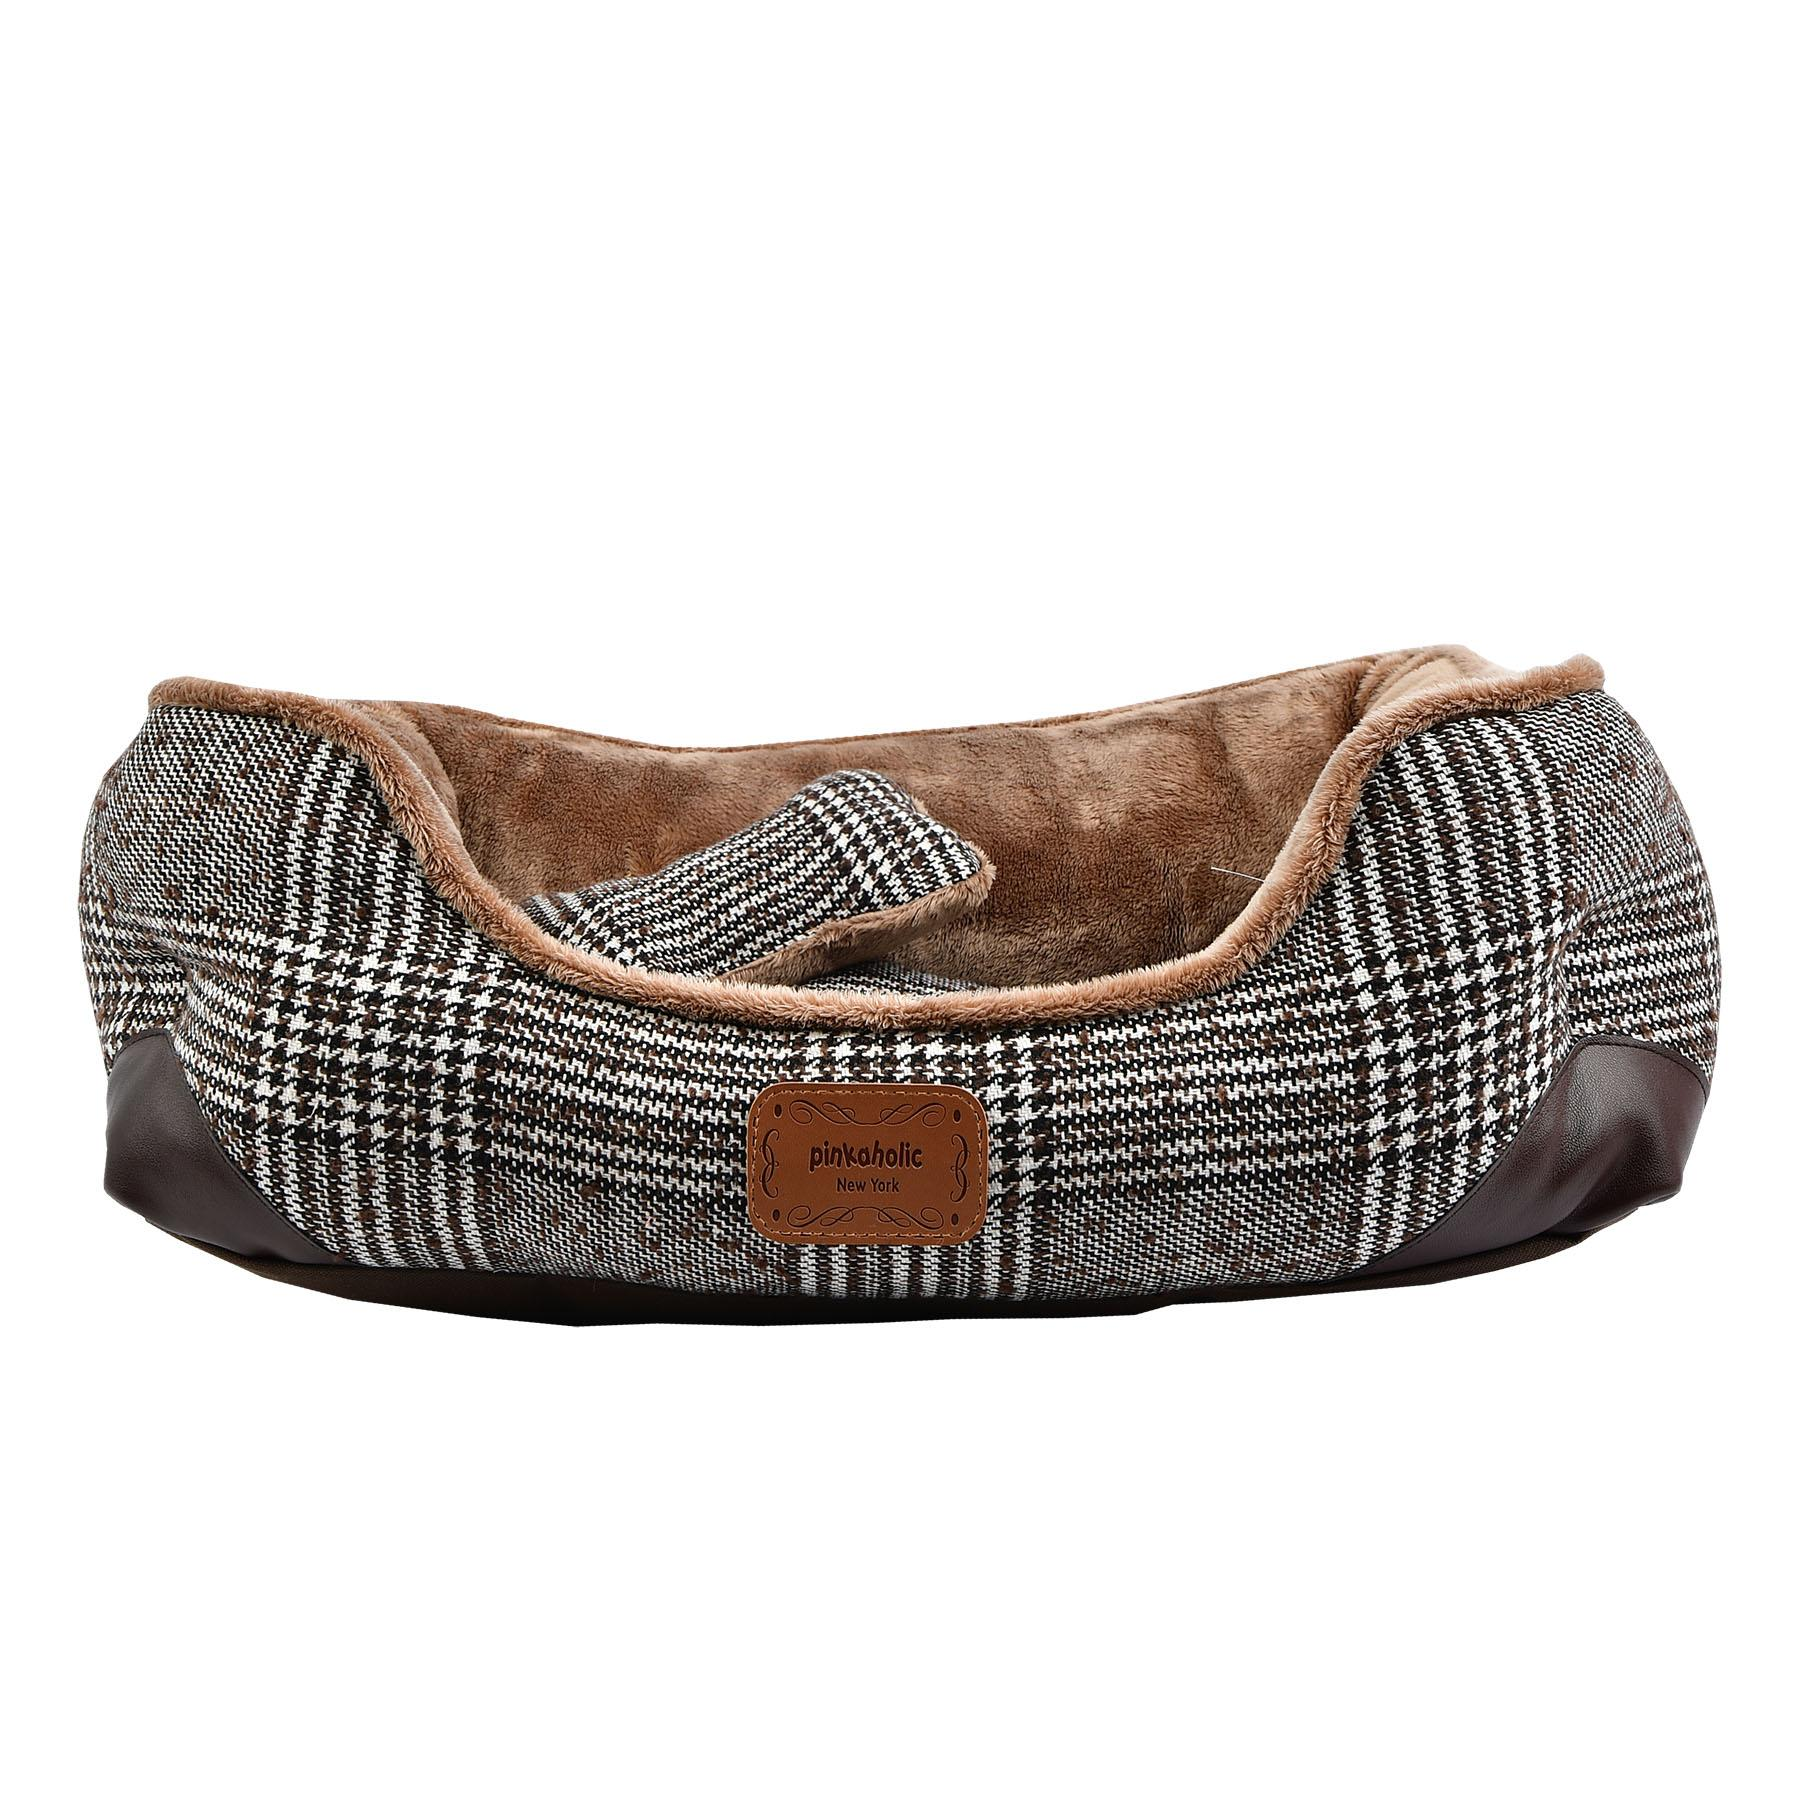 Da Vinci Dog Bed By Pinkaholic - Brown